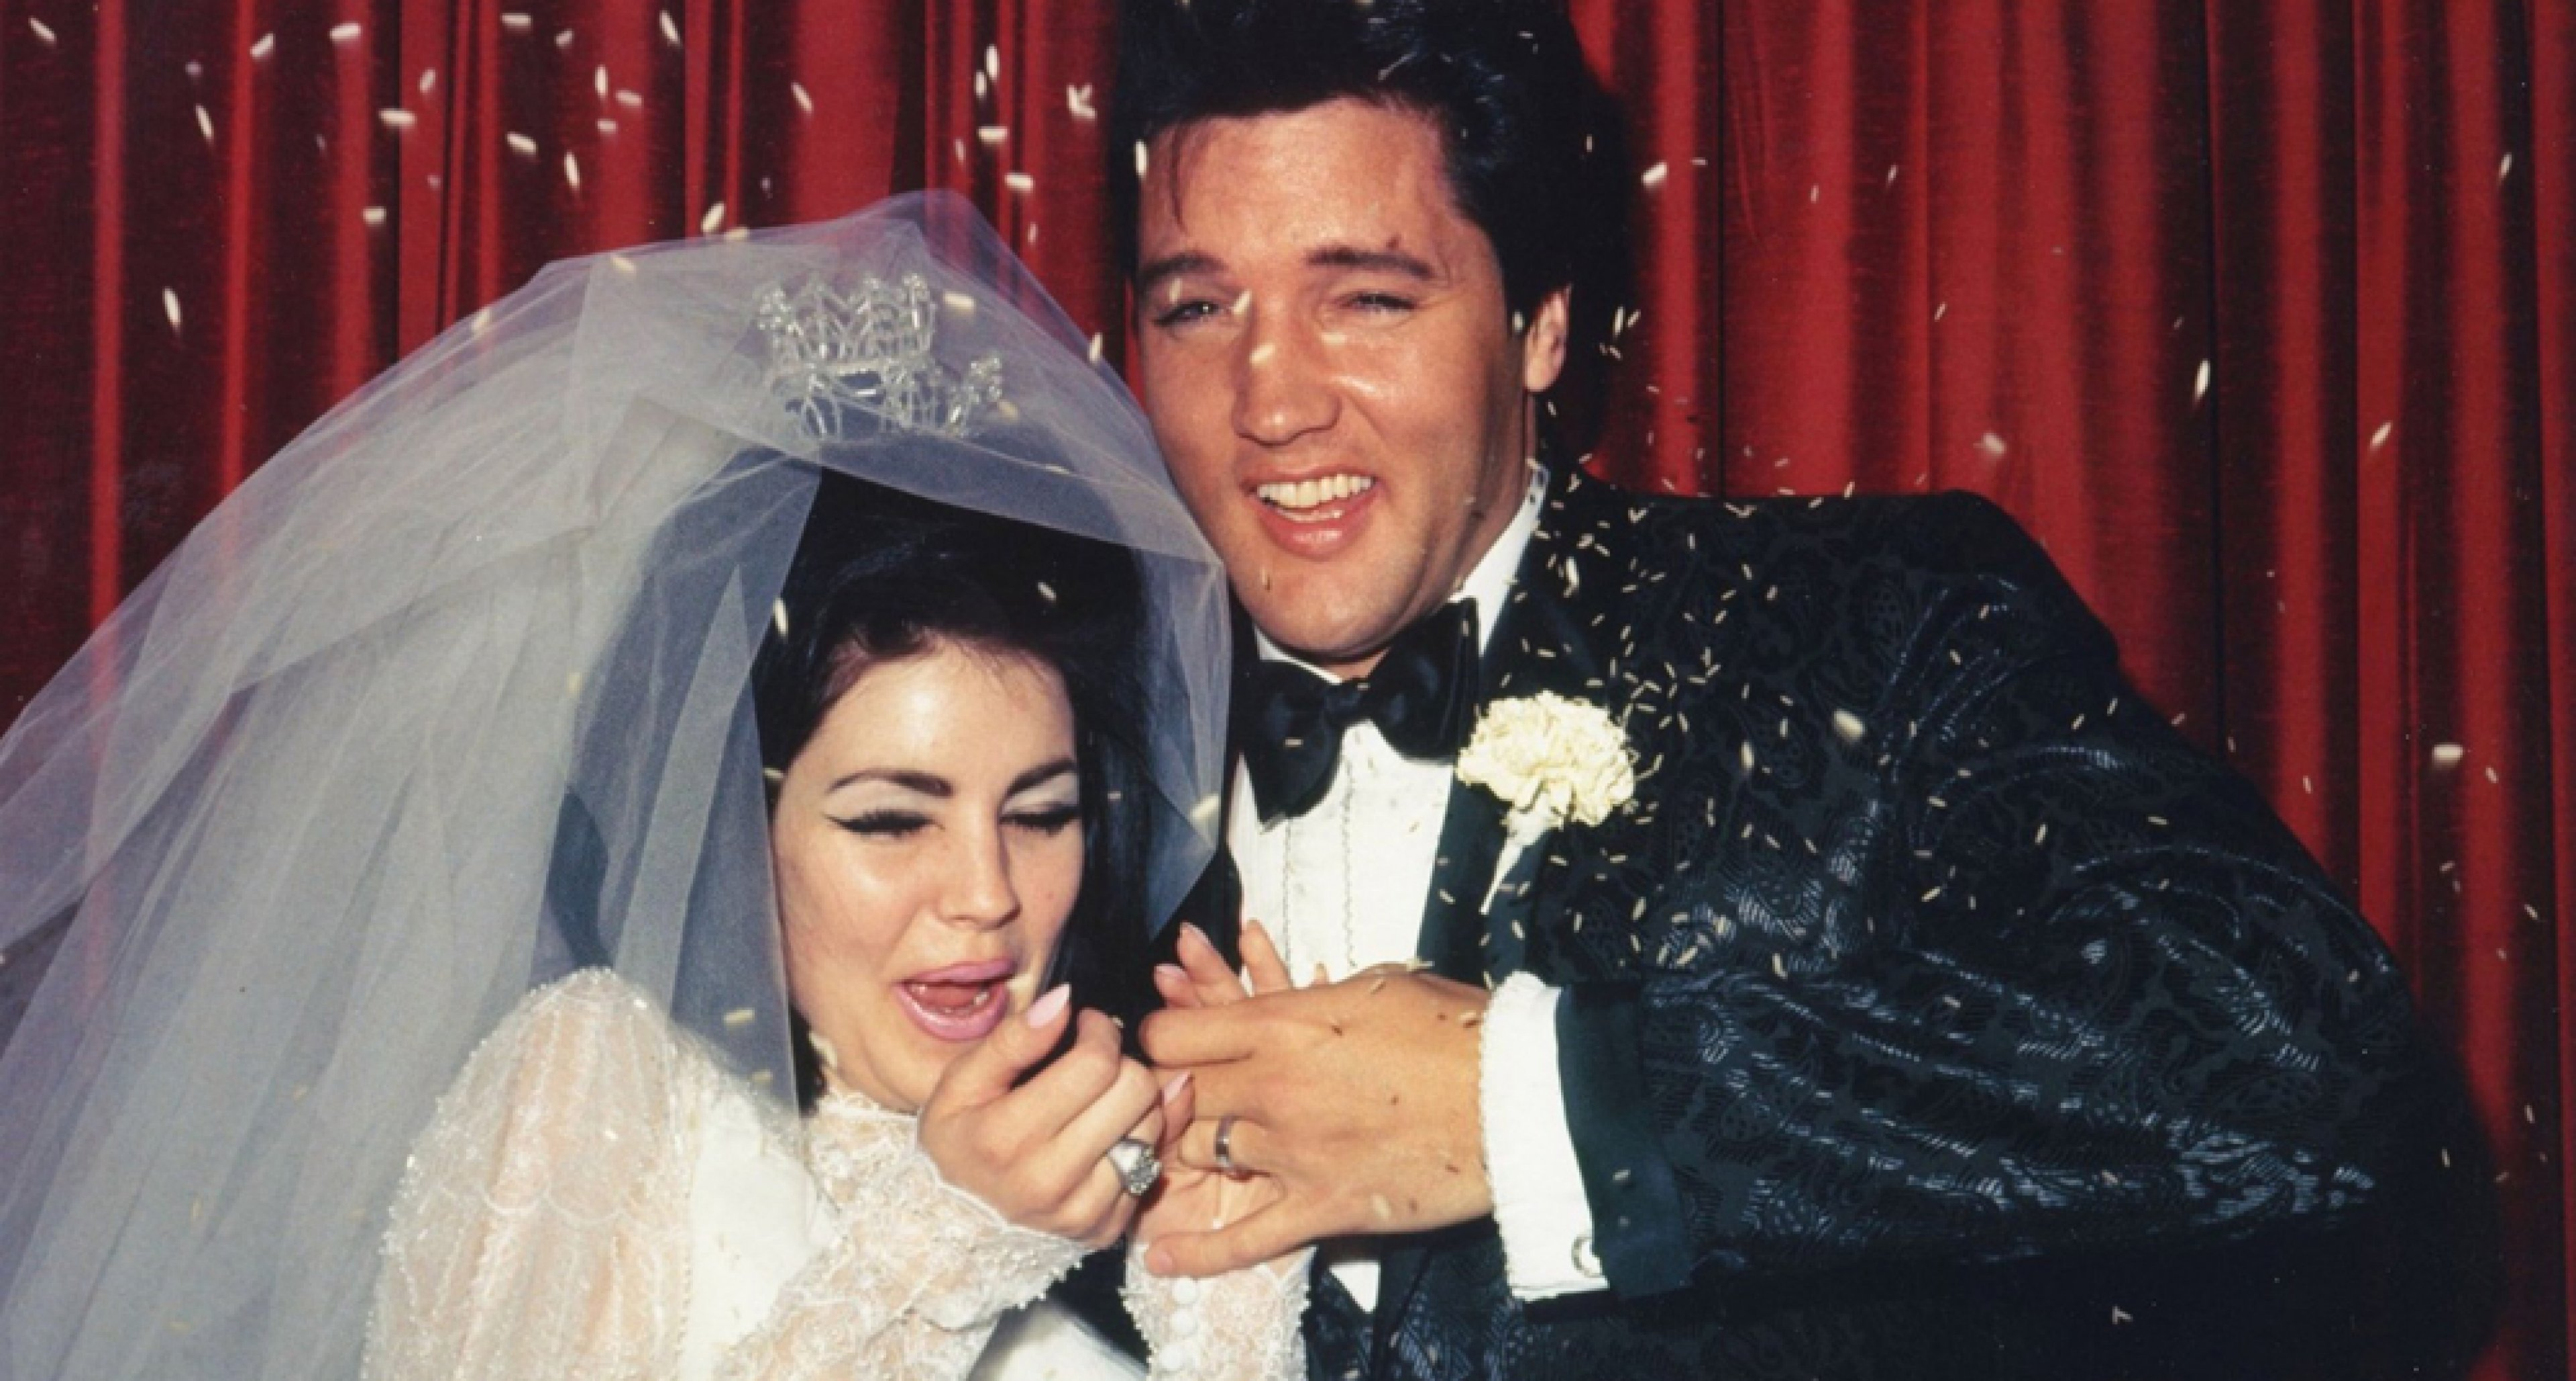 Just married: Elvis and Priscilla Presley on May 1, 1967.